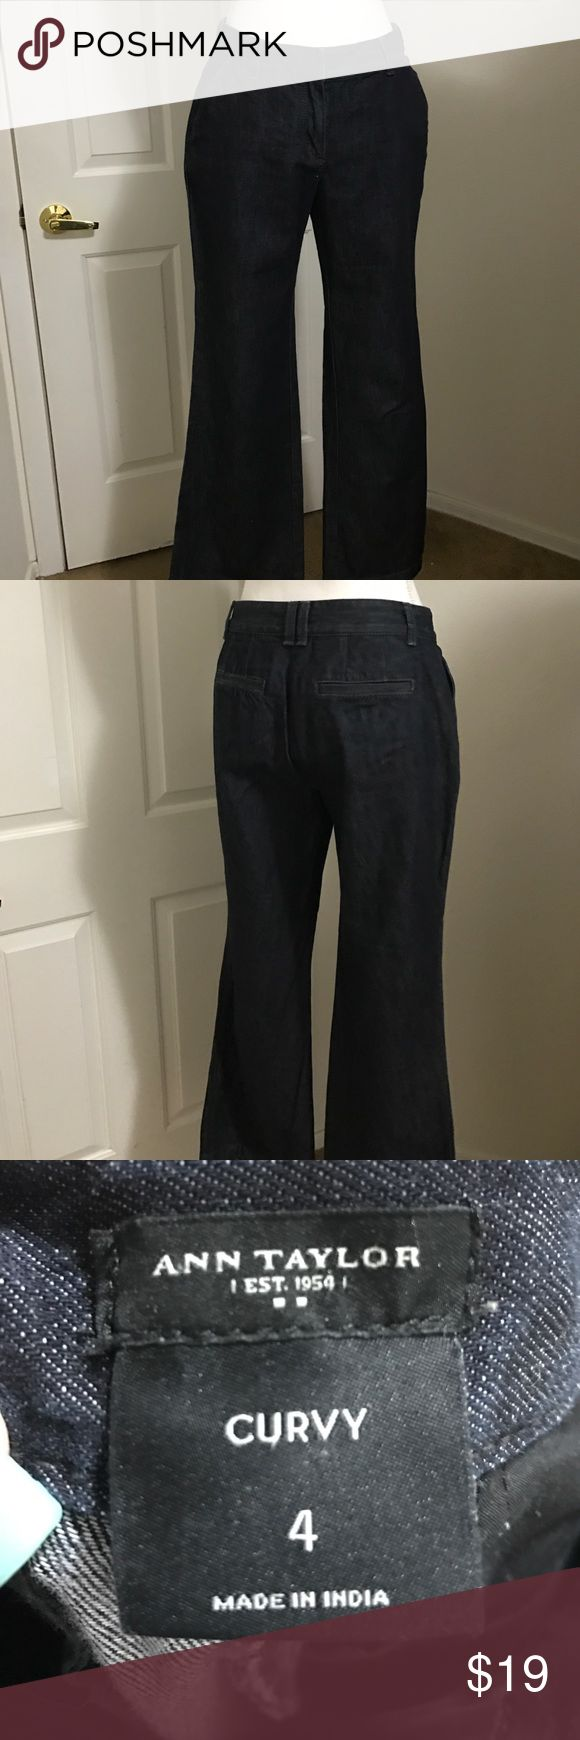 Ann Taylor size 4 curvy jeans Brand new without tags Ann Taylor curvy jeans size 4 very nice classy jeans Ann Taylor Jeans Boot Cut